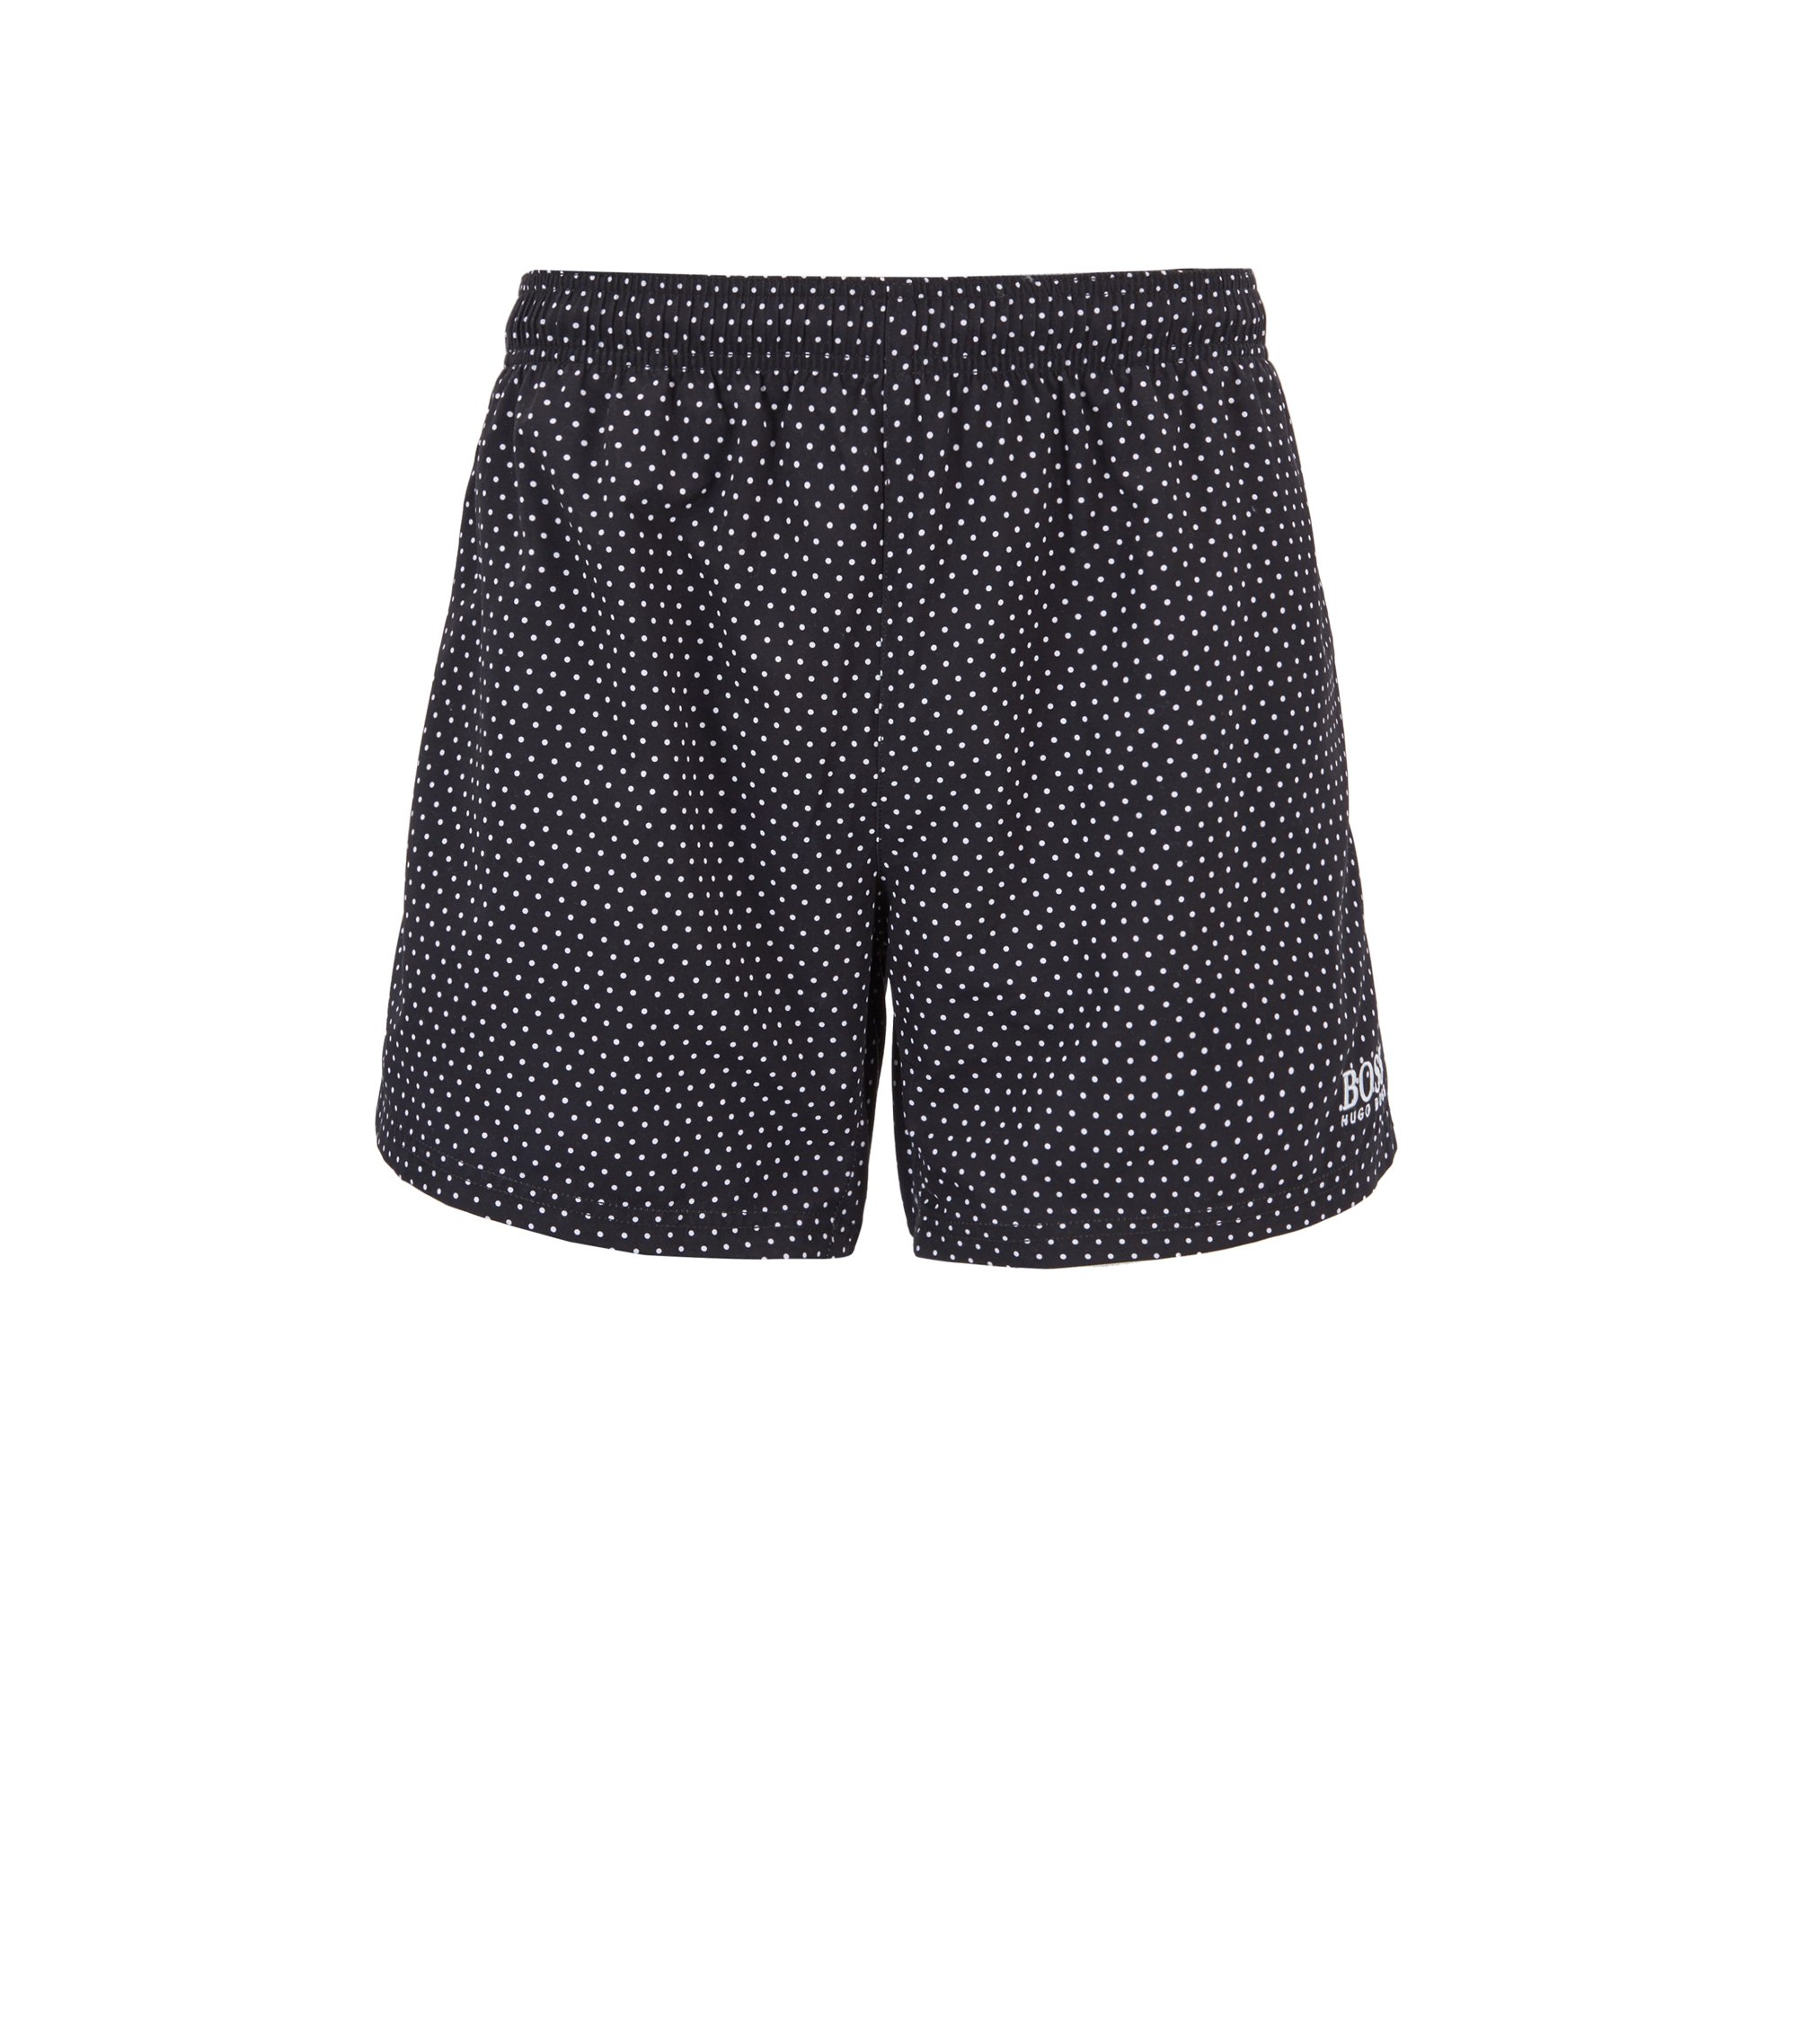 Short-length swim shorts with foil-printed pattern, Black